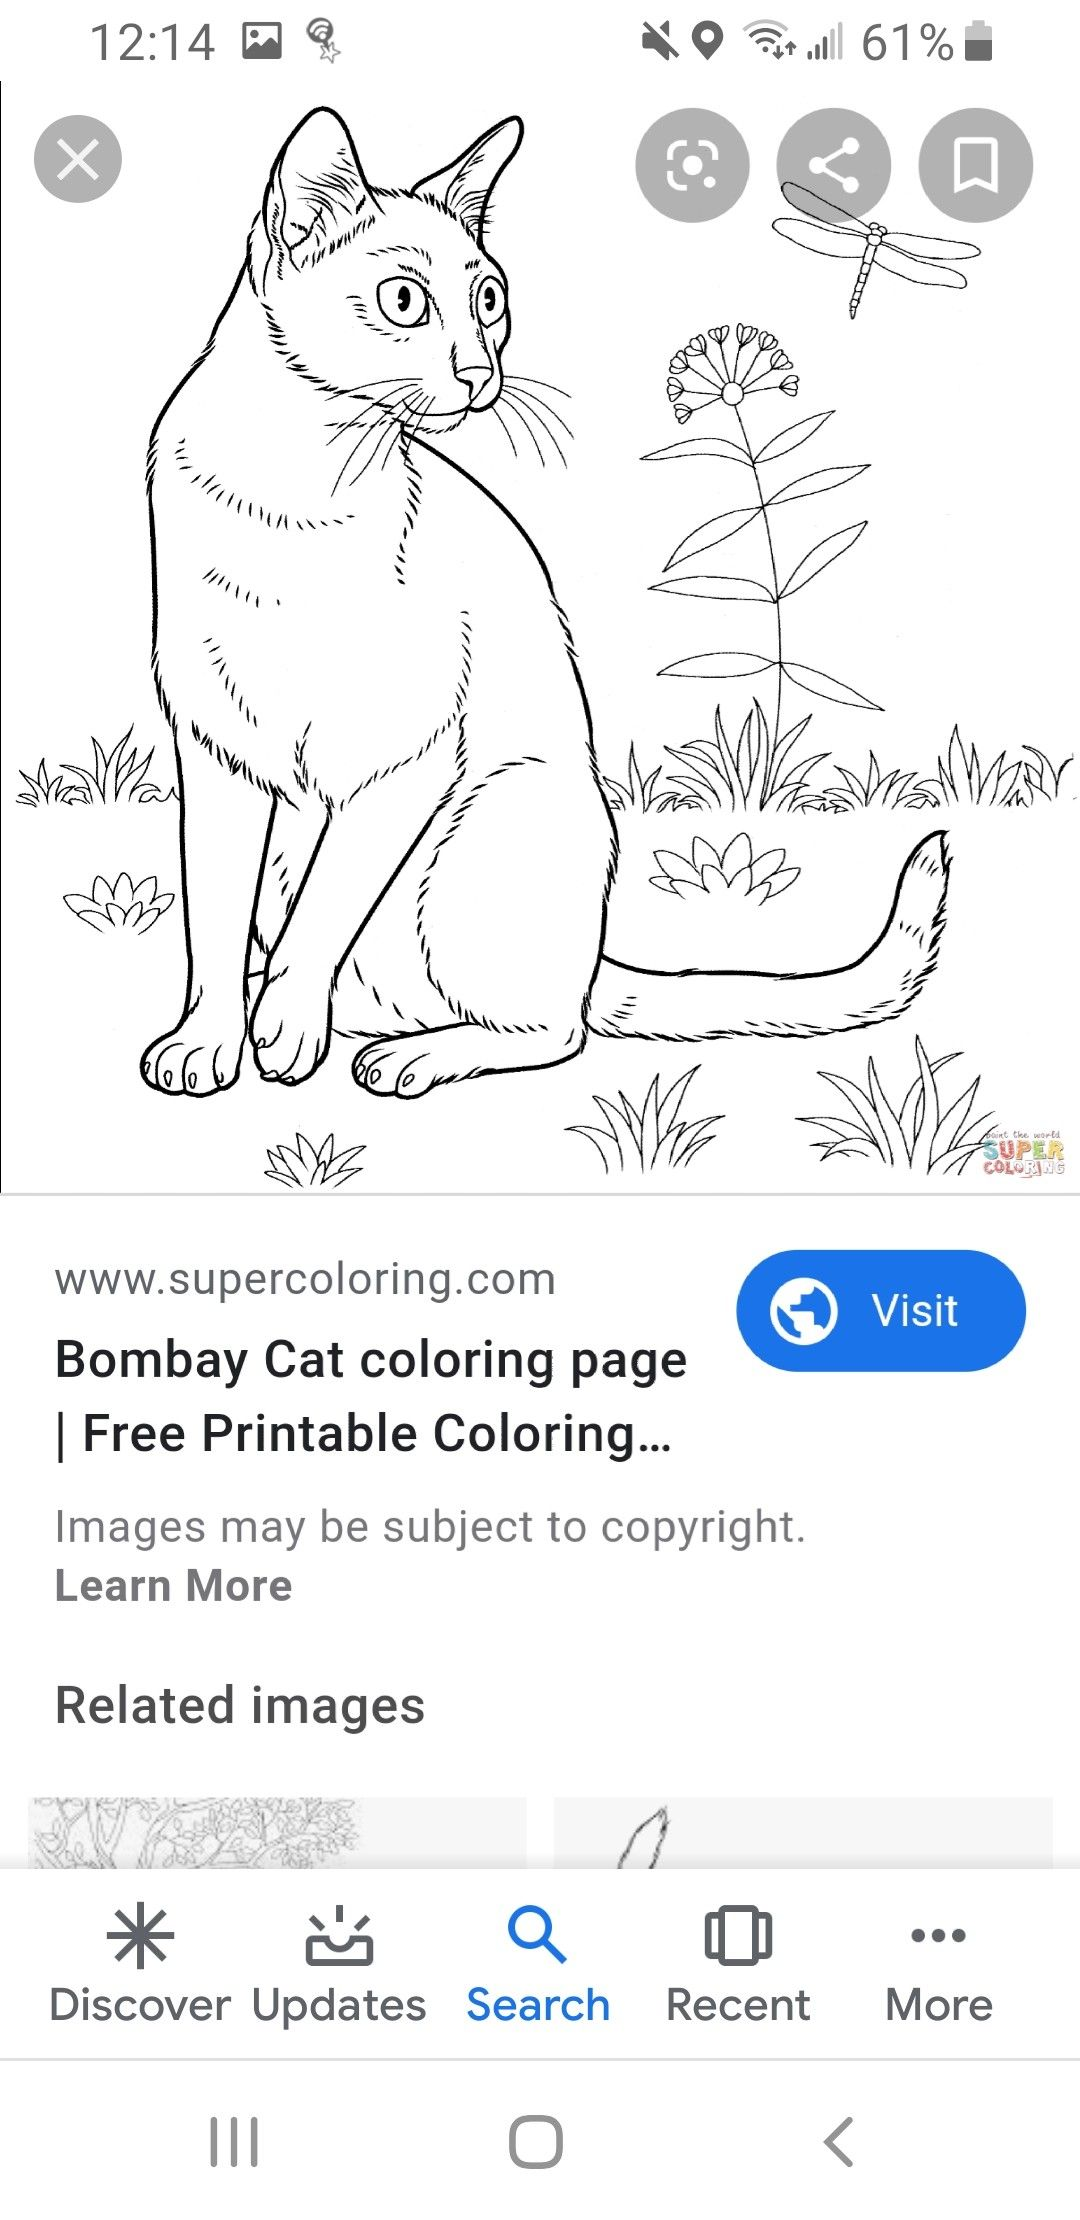 Pin By Alisha Watkins On Animal Drawings Free Printable Coloring Cat Coloring Page Coloring Pages